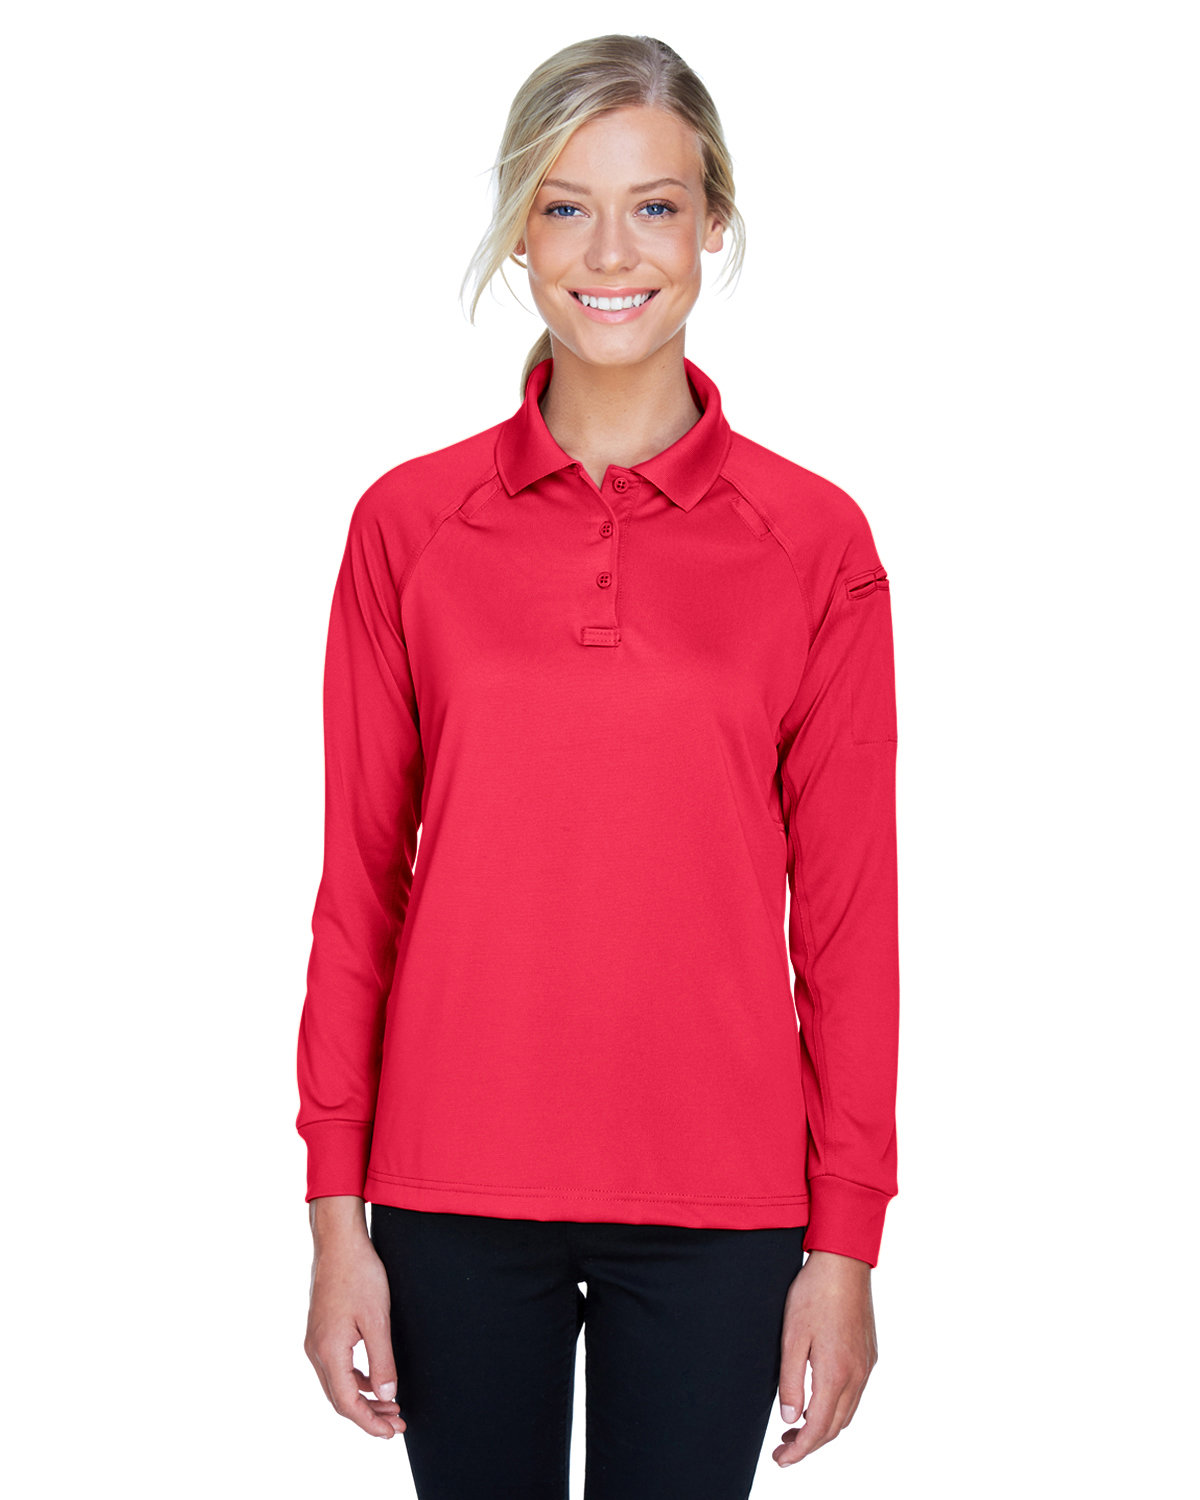 Harriton Ladies' Advantage Snag Protection Plus Long-Sleeve Tactical Polo RED